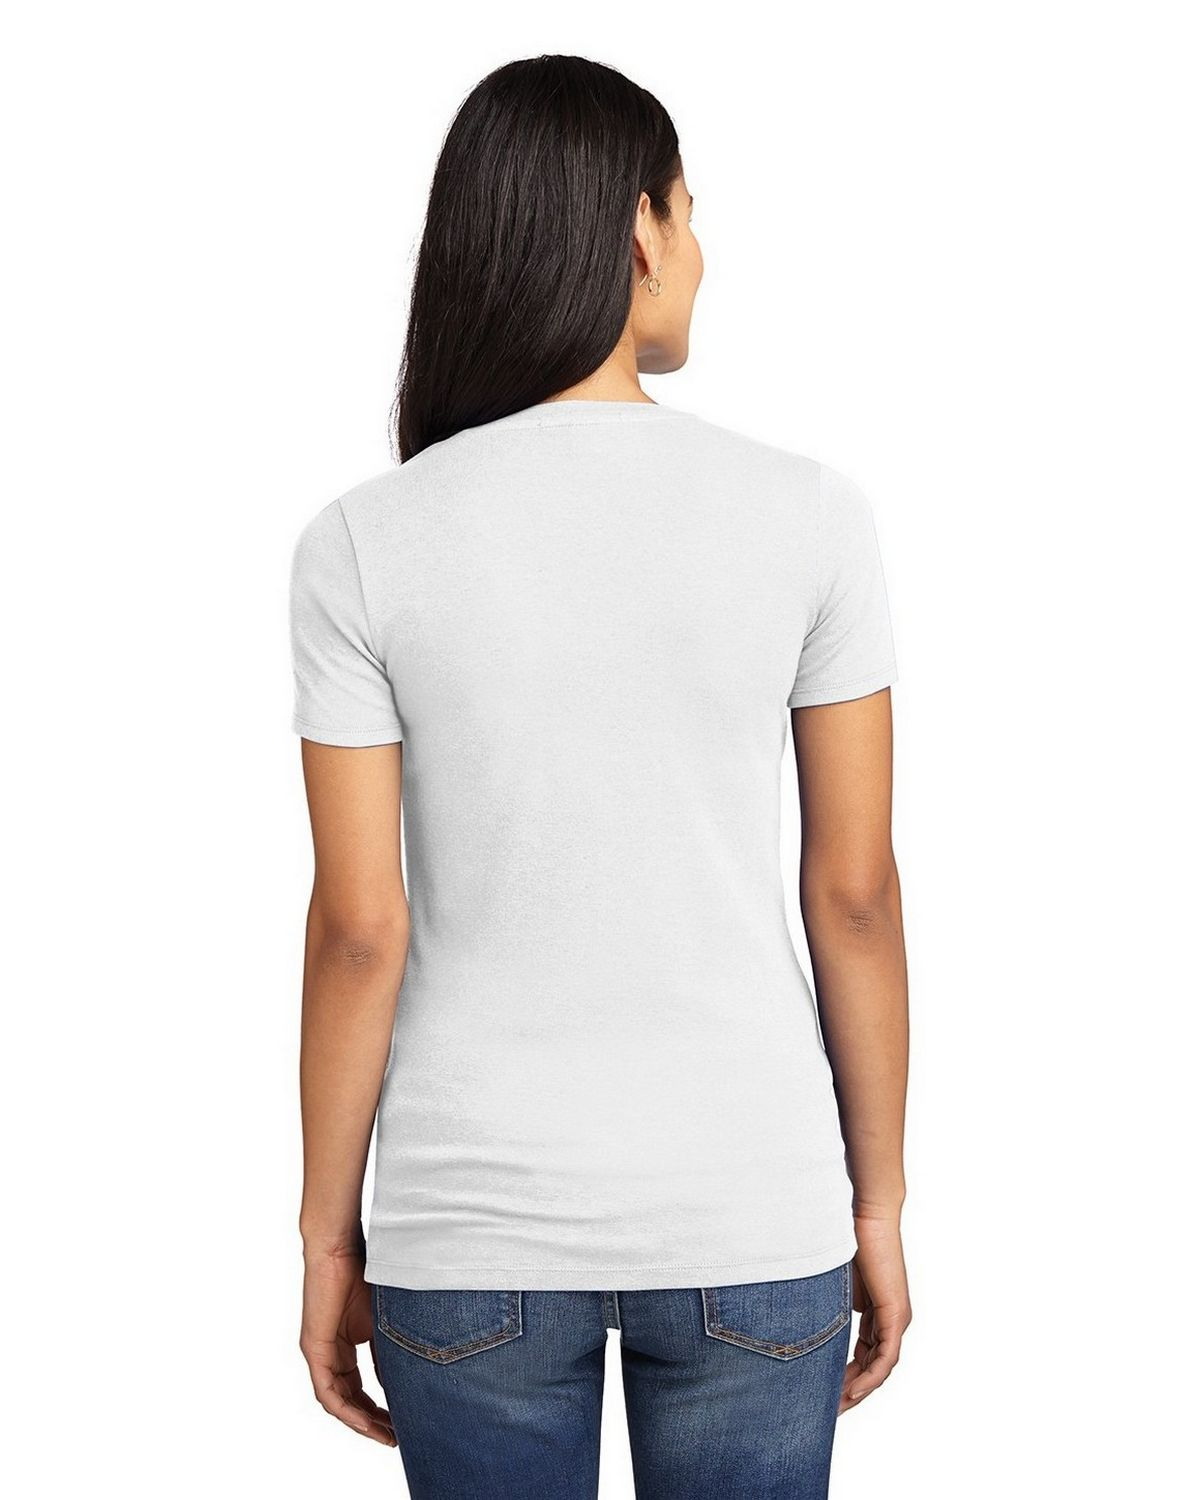 9e7f960bb6bb Size Chart for Port Authority LM1005 Ladies Concept Stretch V-Neck Tee